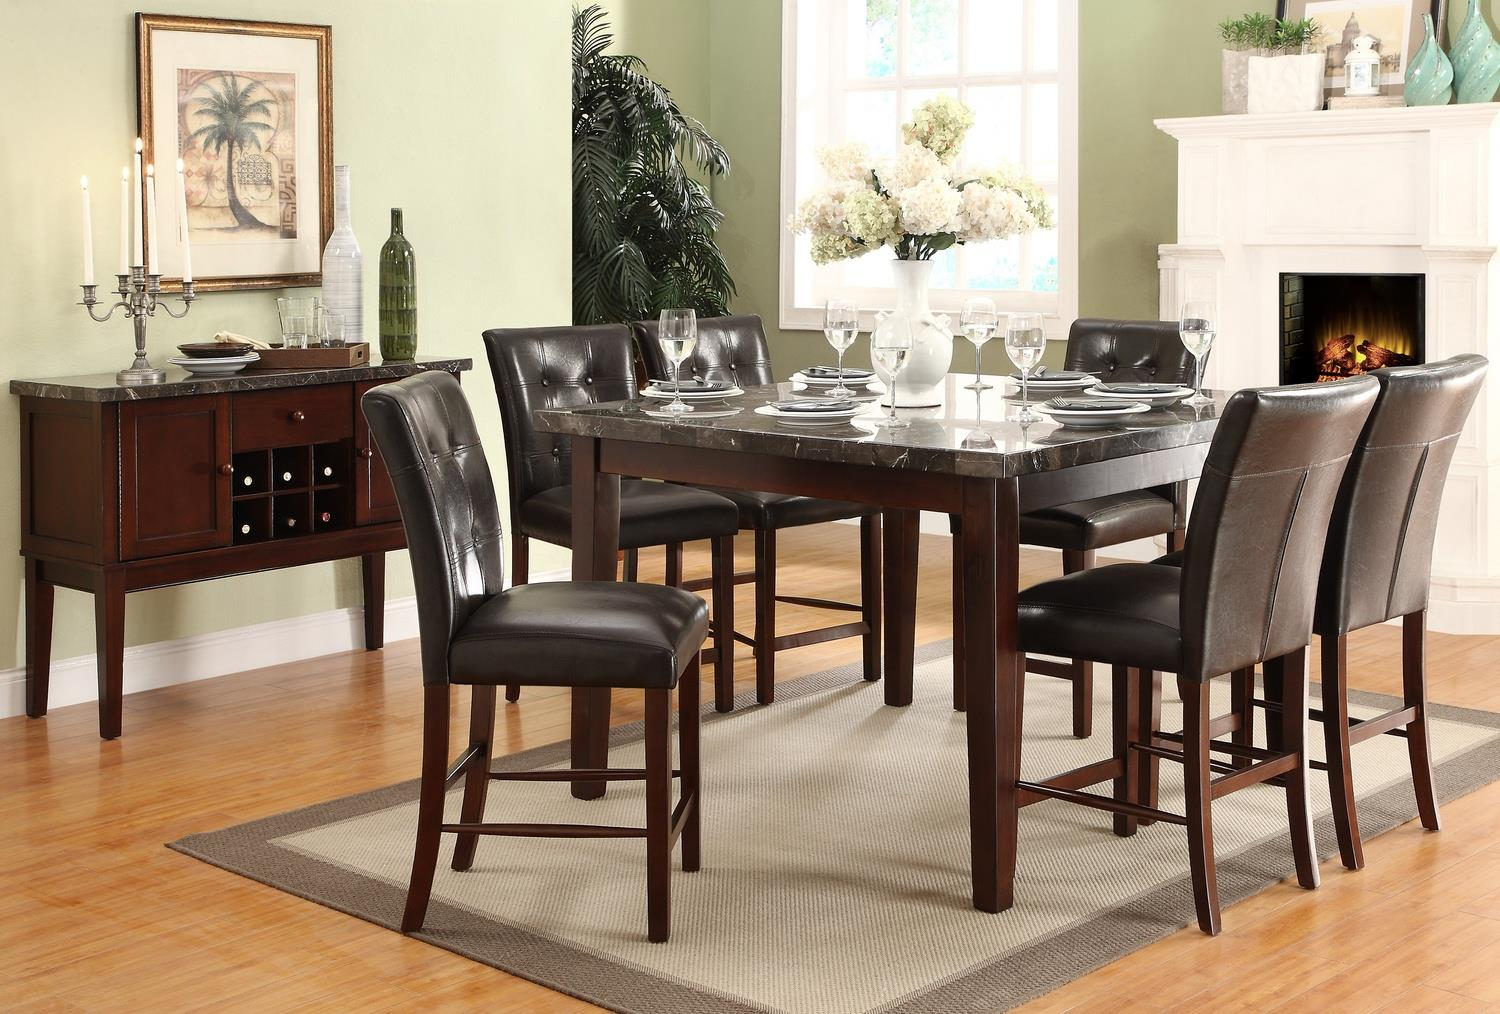 Homelegance Decatur Casual Dining Room Group - Item Number: 2456 Dining Room Group 1